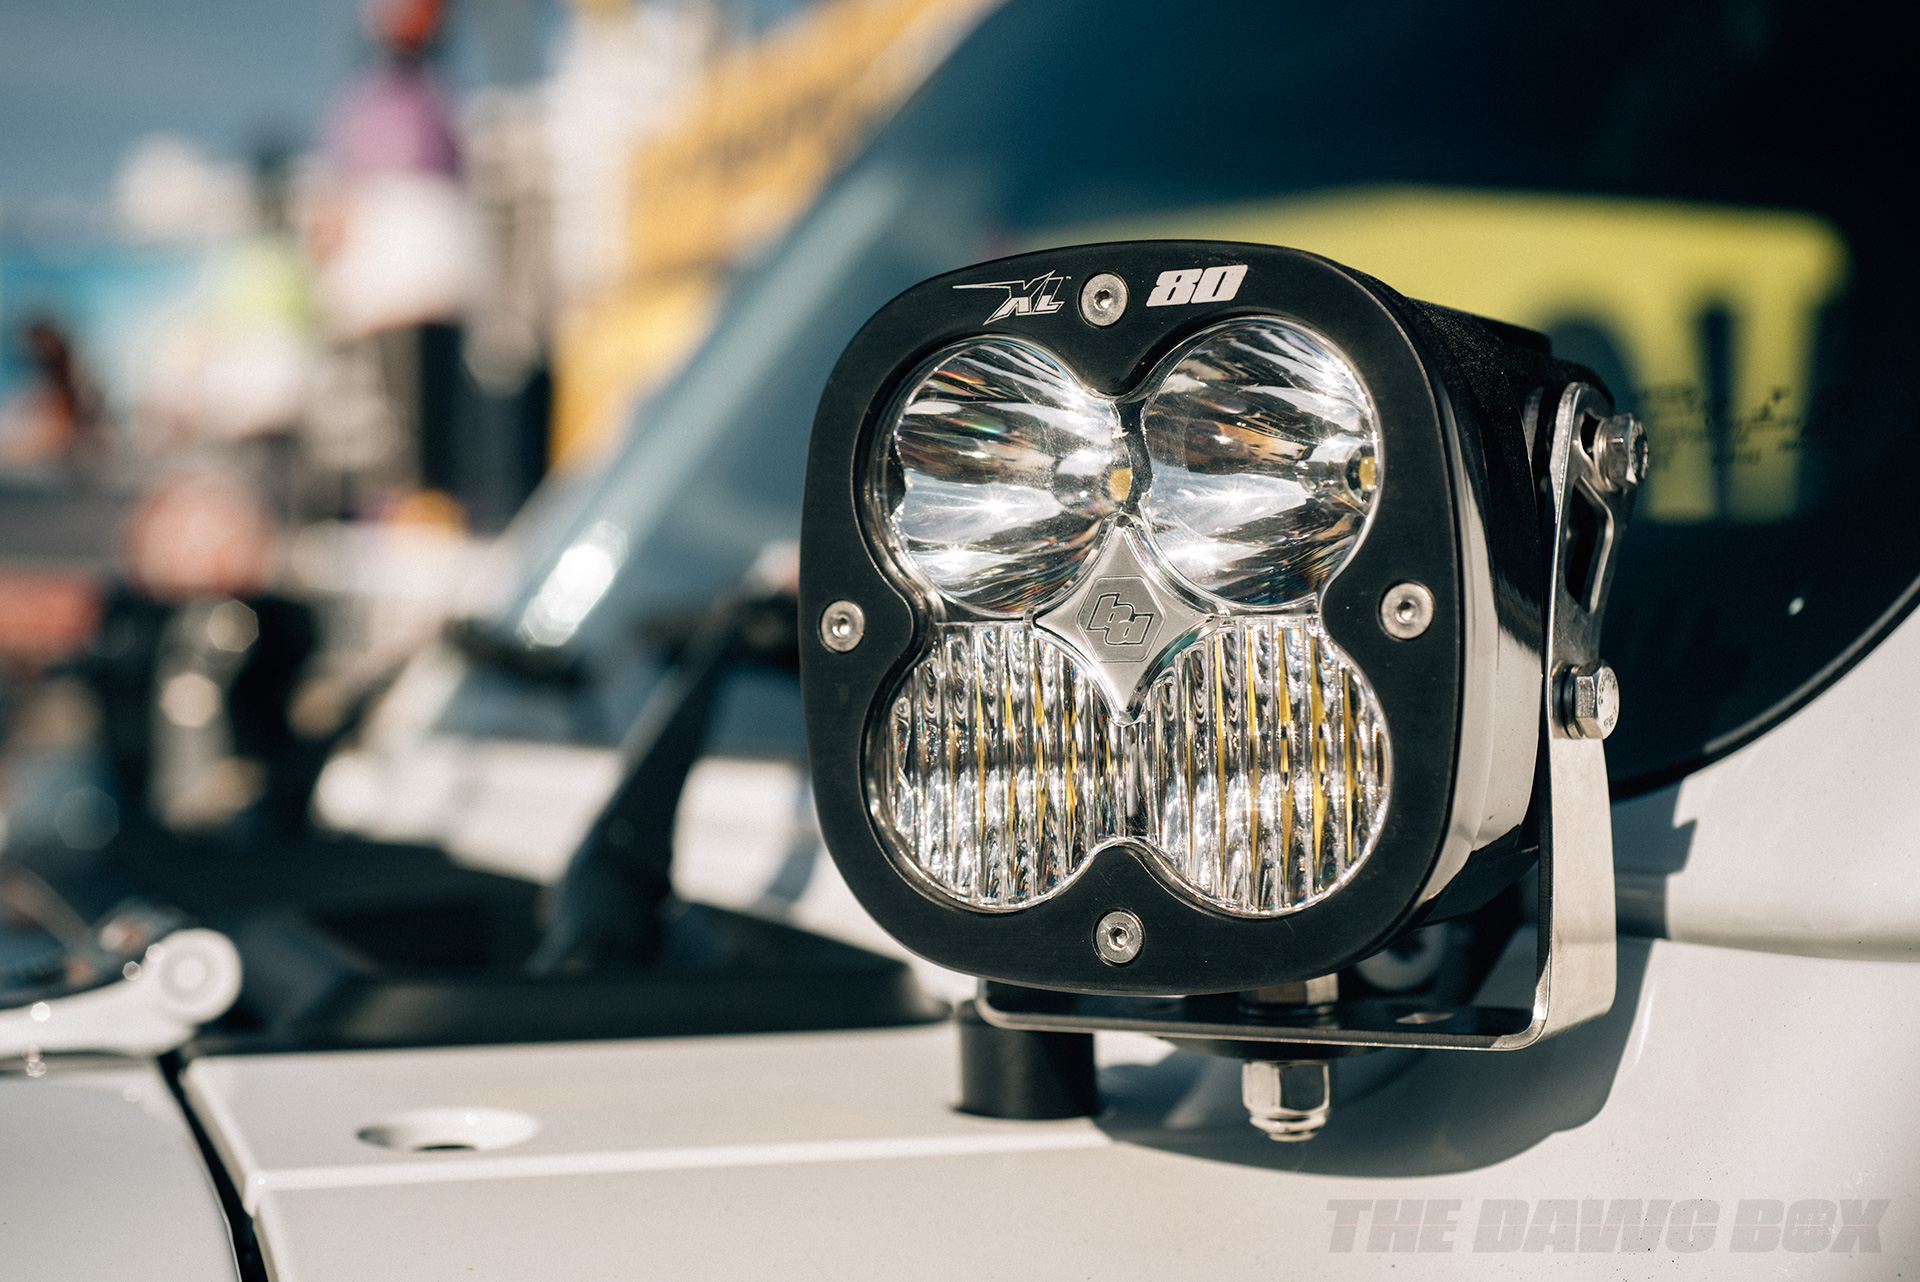 What are LED Lights?, Baja Designs XL80